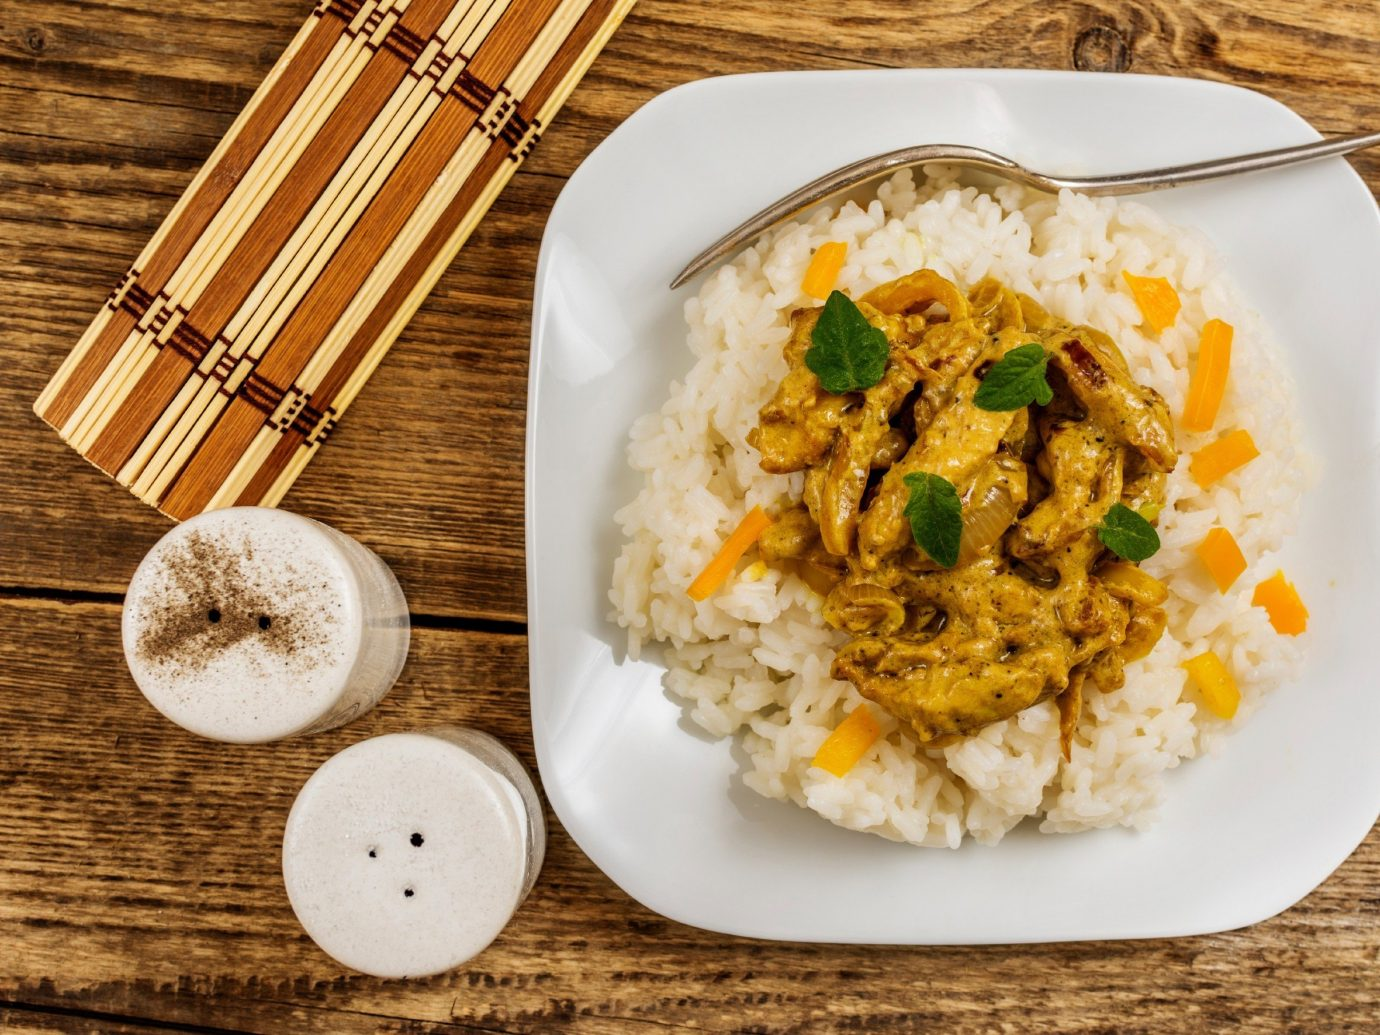 Food + Drink plate food table dish curry cuisine meal coconut produce asian food breakfast white rice steamed rice thai food vegetable chinese food fried rice